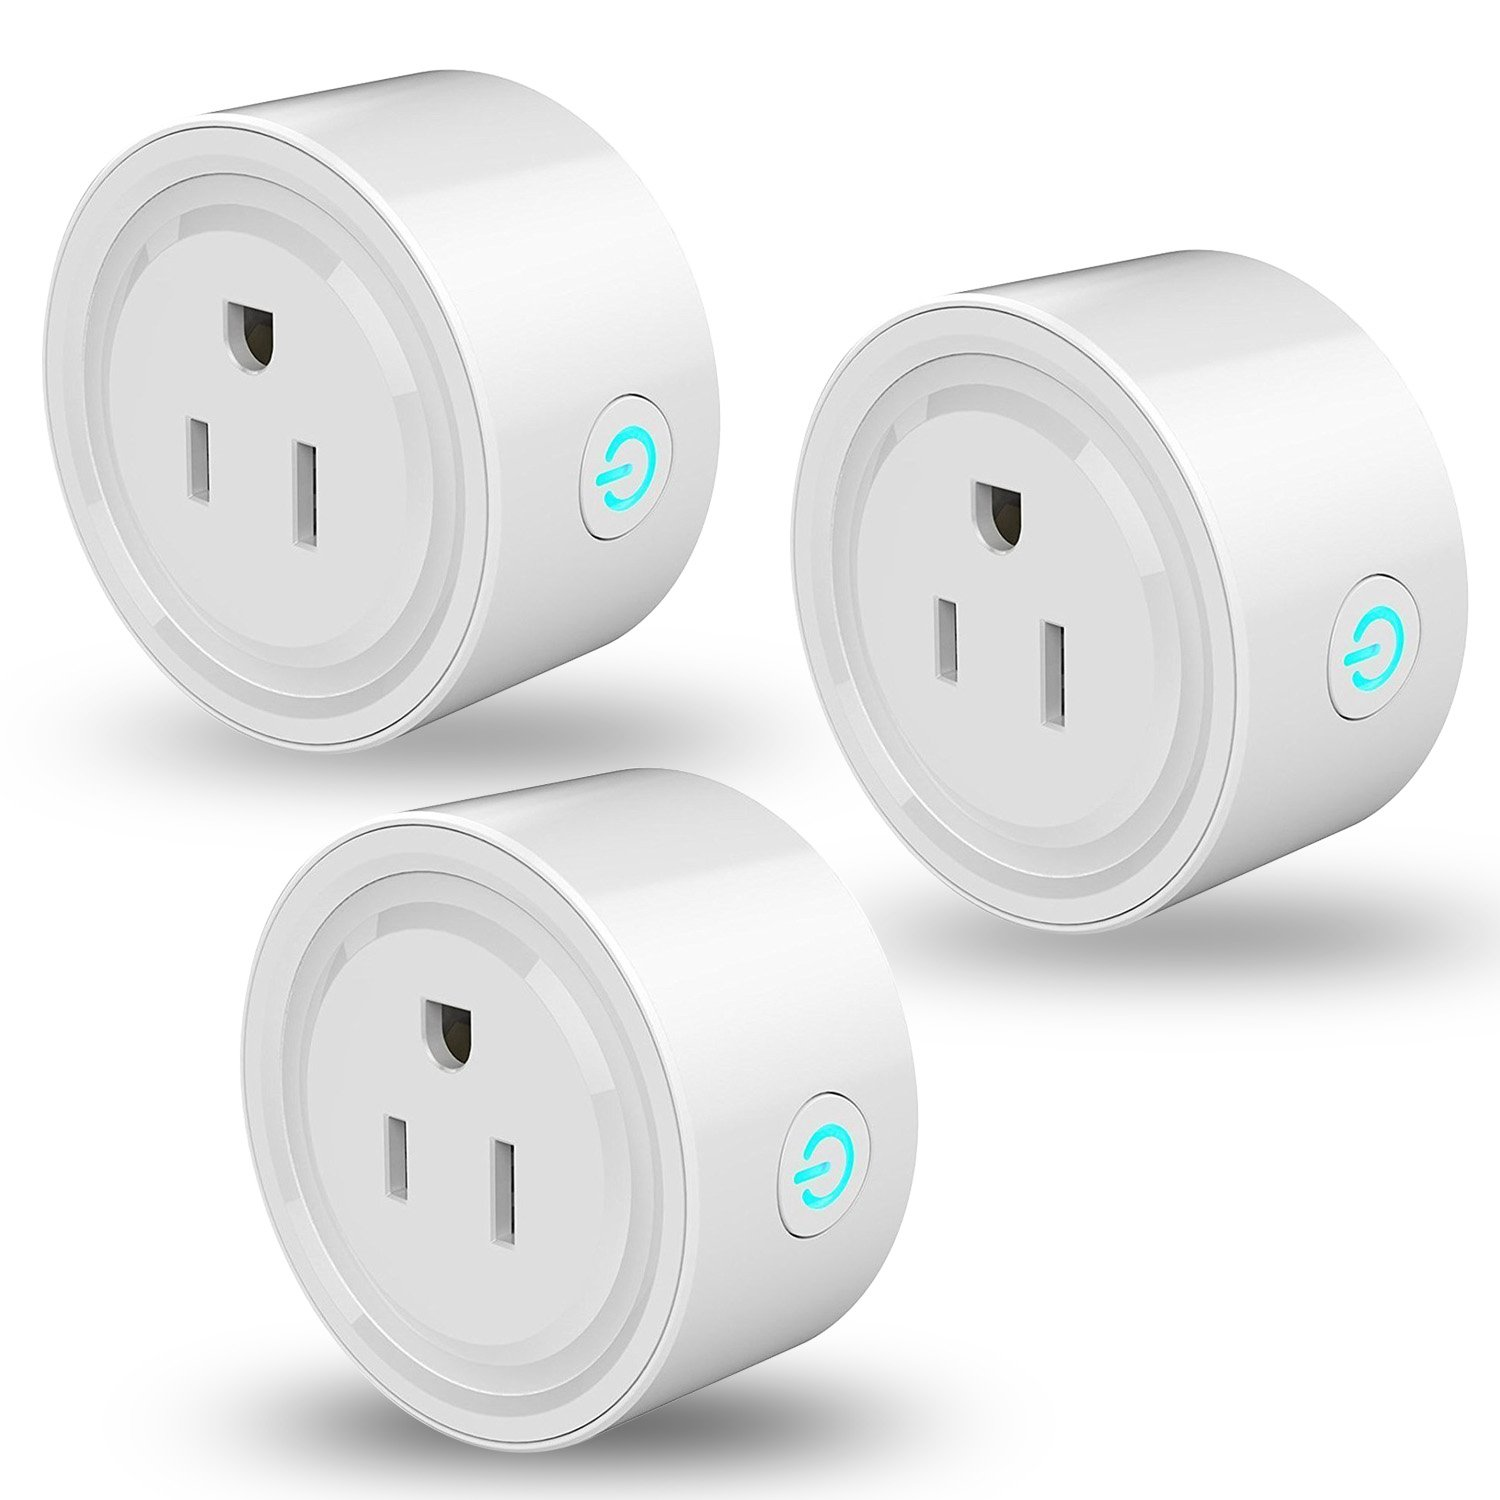 Mini Smart Plug Outlet,Compatible with Alexa Echo Google Home, EEEKit Wifi Voice and App Remote Controlled Socket - No Hub Required (3-pack)